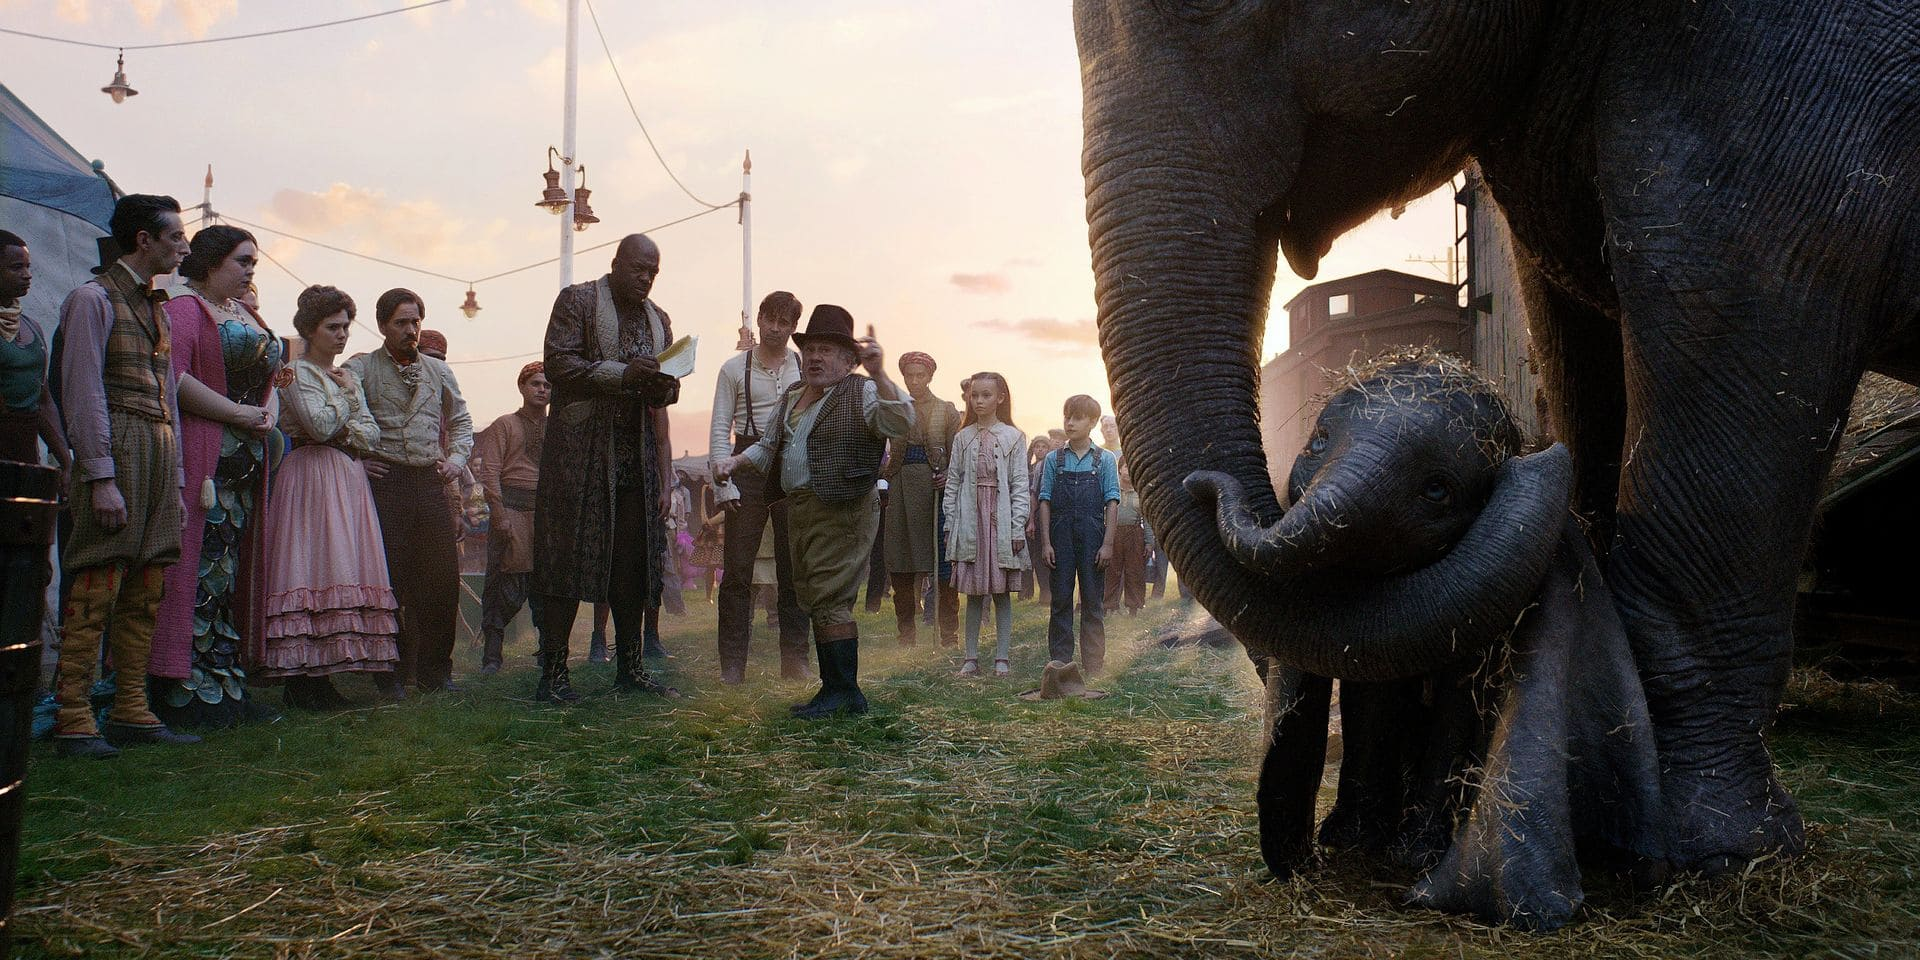 """CIRCUS FAMILY - In Disney's all-new live-action adventure """"Dumbo,"""" circus owner Max Medici (Danny DeVito) and circus performer Rongo the Strongo (Deobia Oparai)-plus the rest of their big-top team-welcome a newborn elephant with oversized ears to their tight-knit family. Directed by Tim Burton, """"Dumbo"""" flies into theaters on March 29, 2019. ©2018 Disney Enterprises, Inc. All Rights Reserved."""